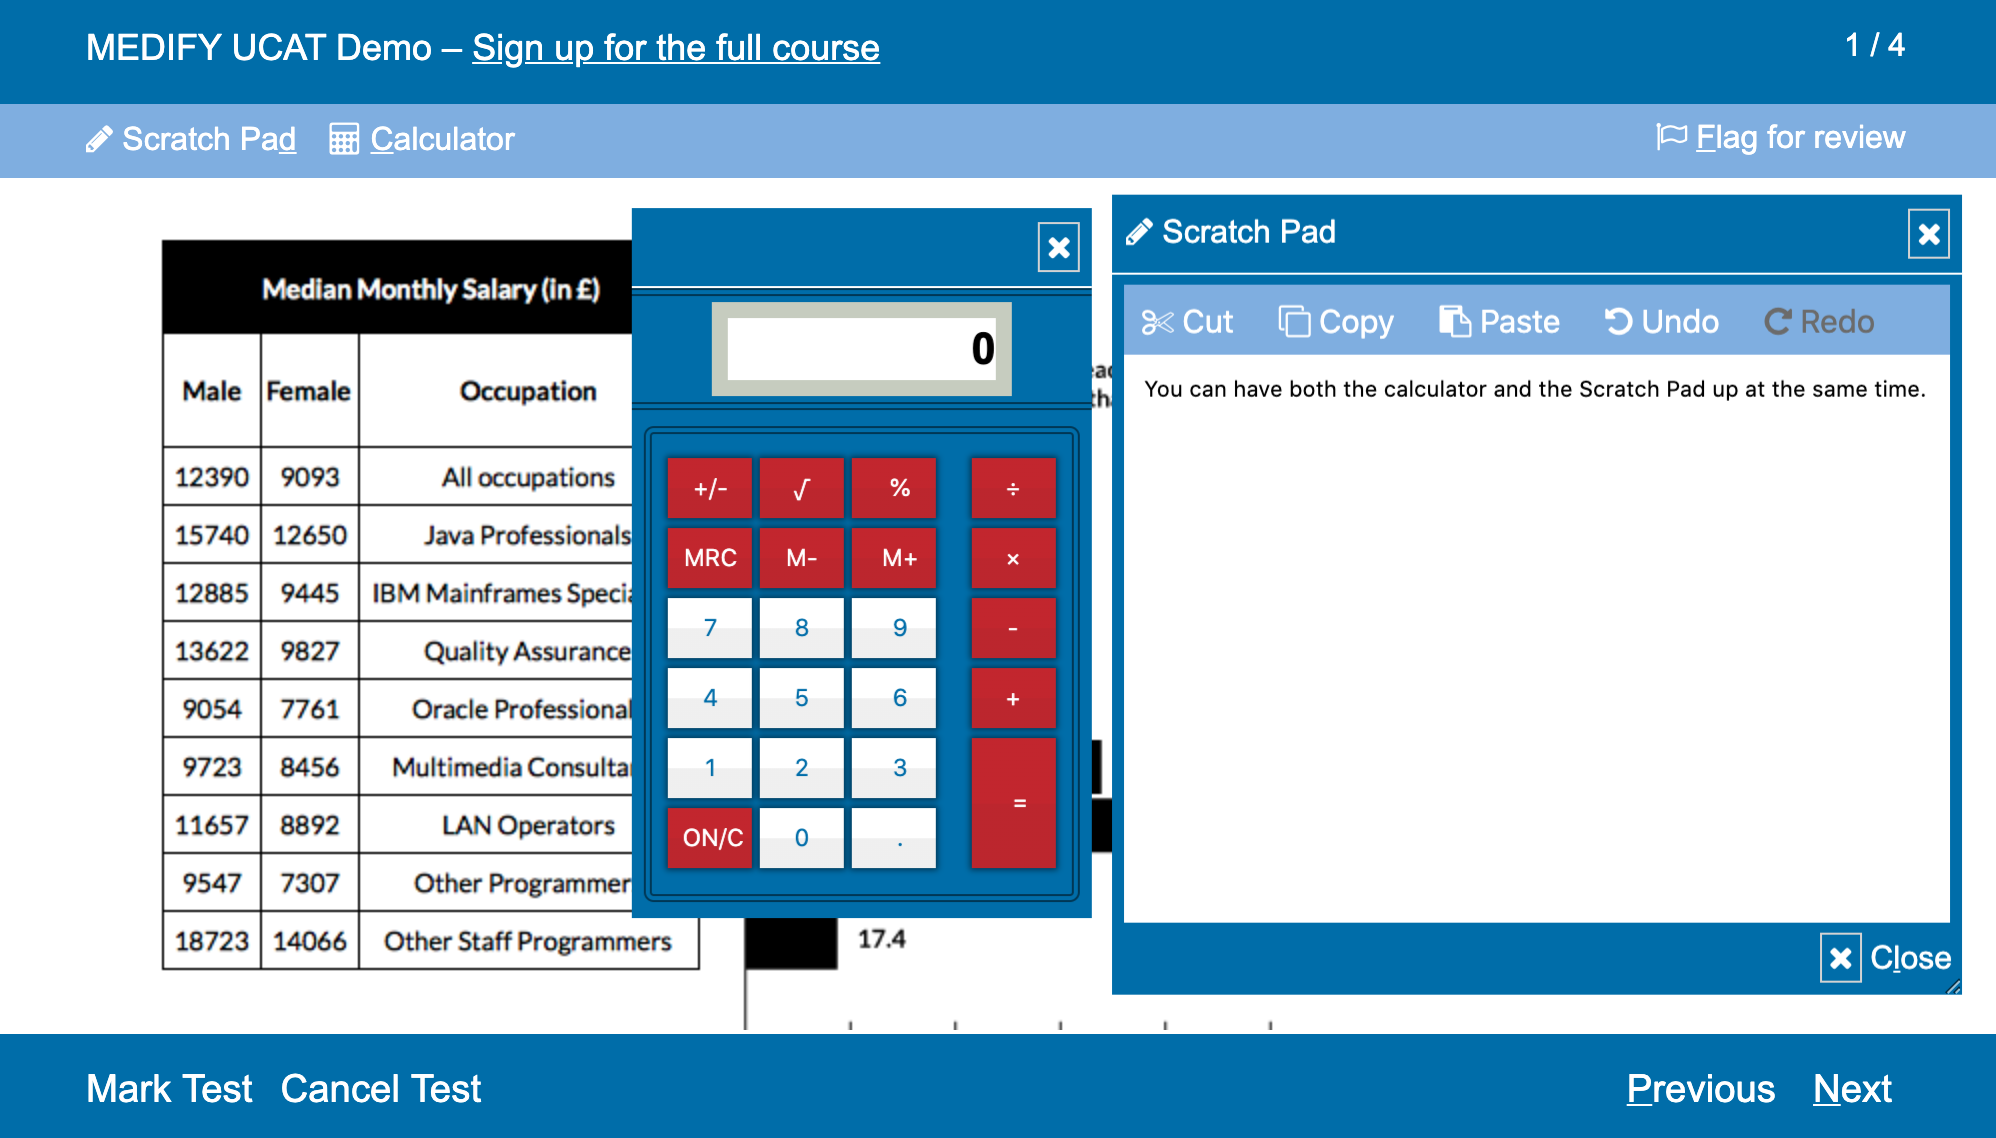 UCAT scratch pad and calculator displayed on one screen